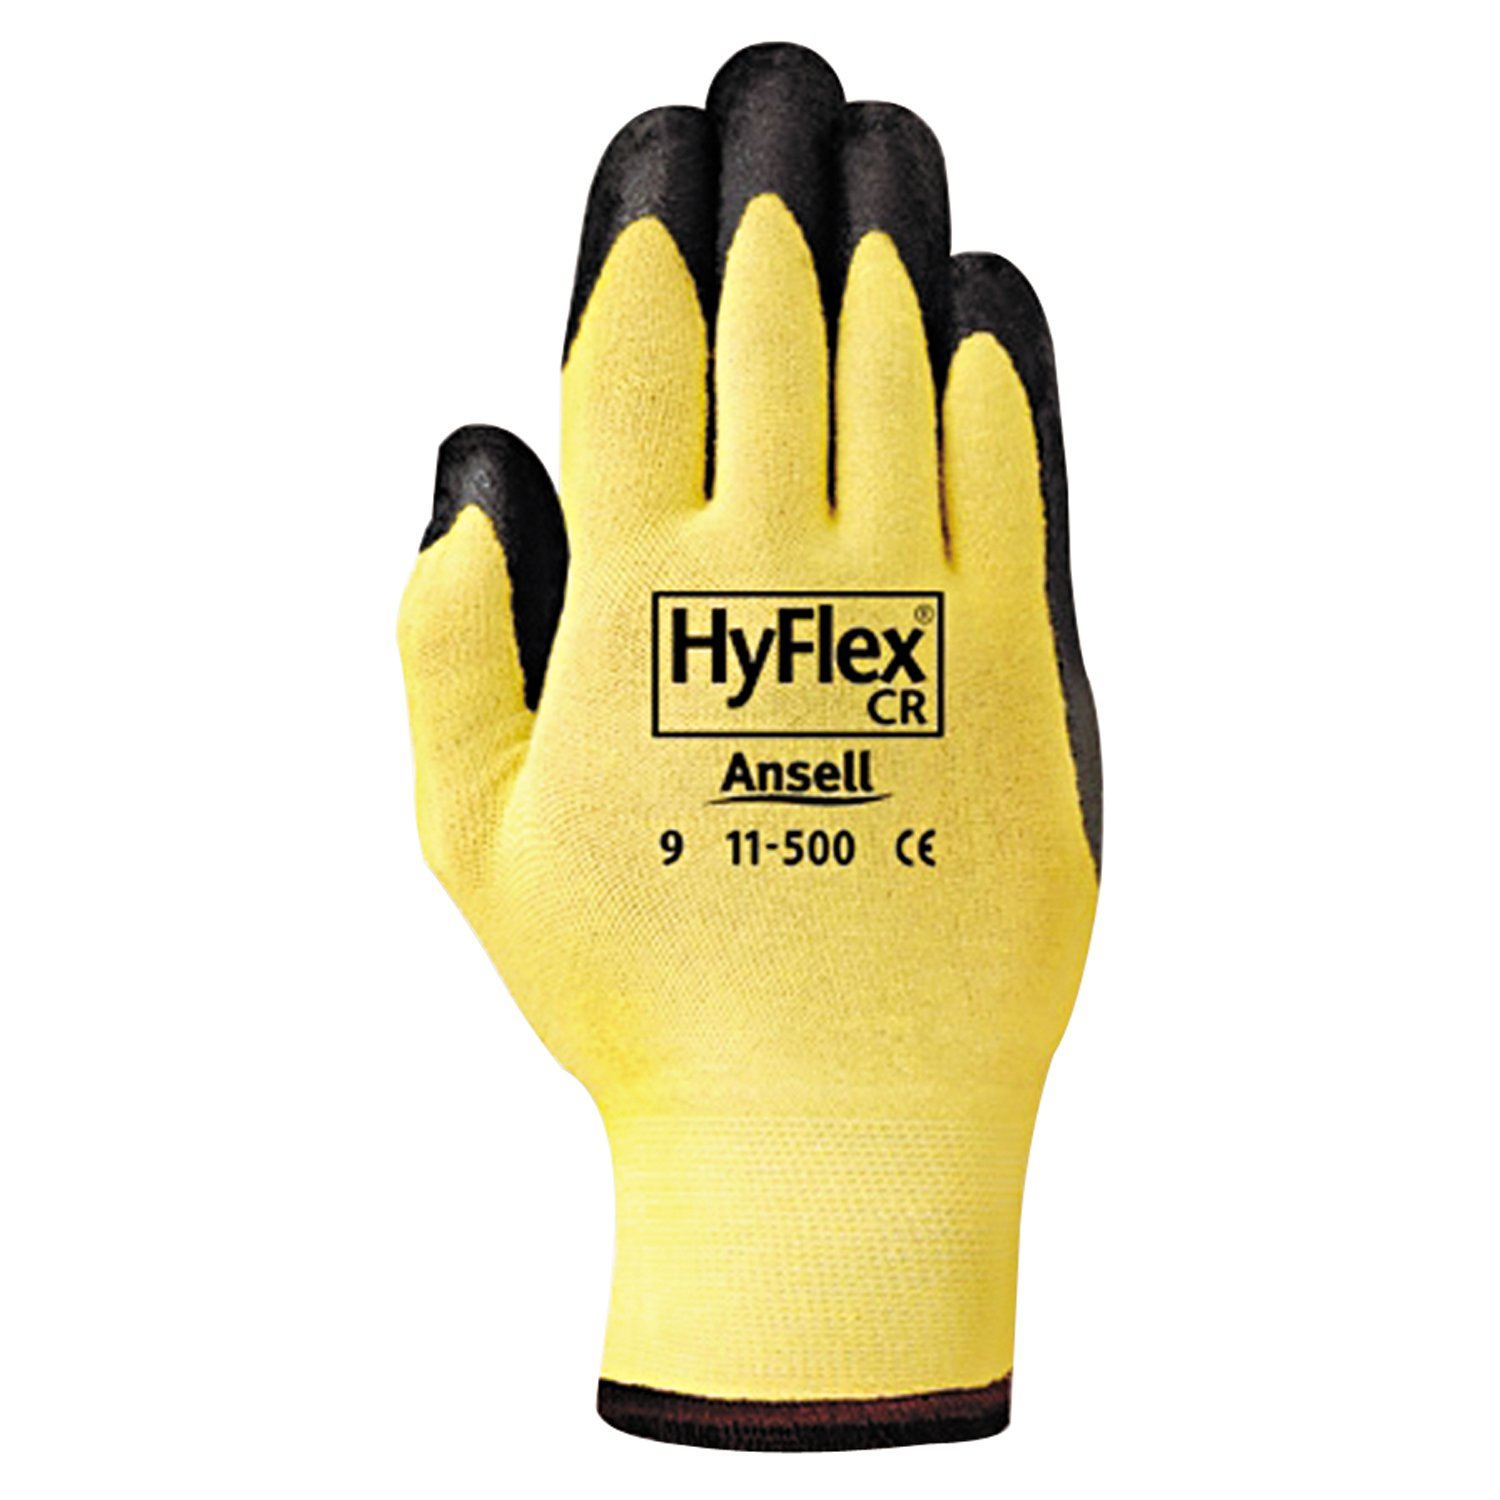 Ansell 11-500-10 HyFlex CR Gloves, Size 10 (Pack of 12)